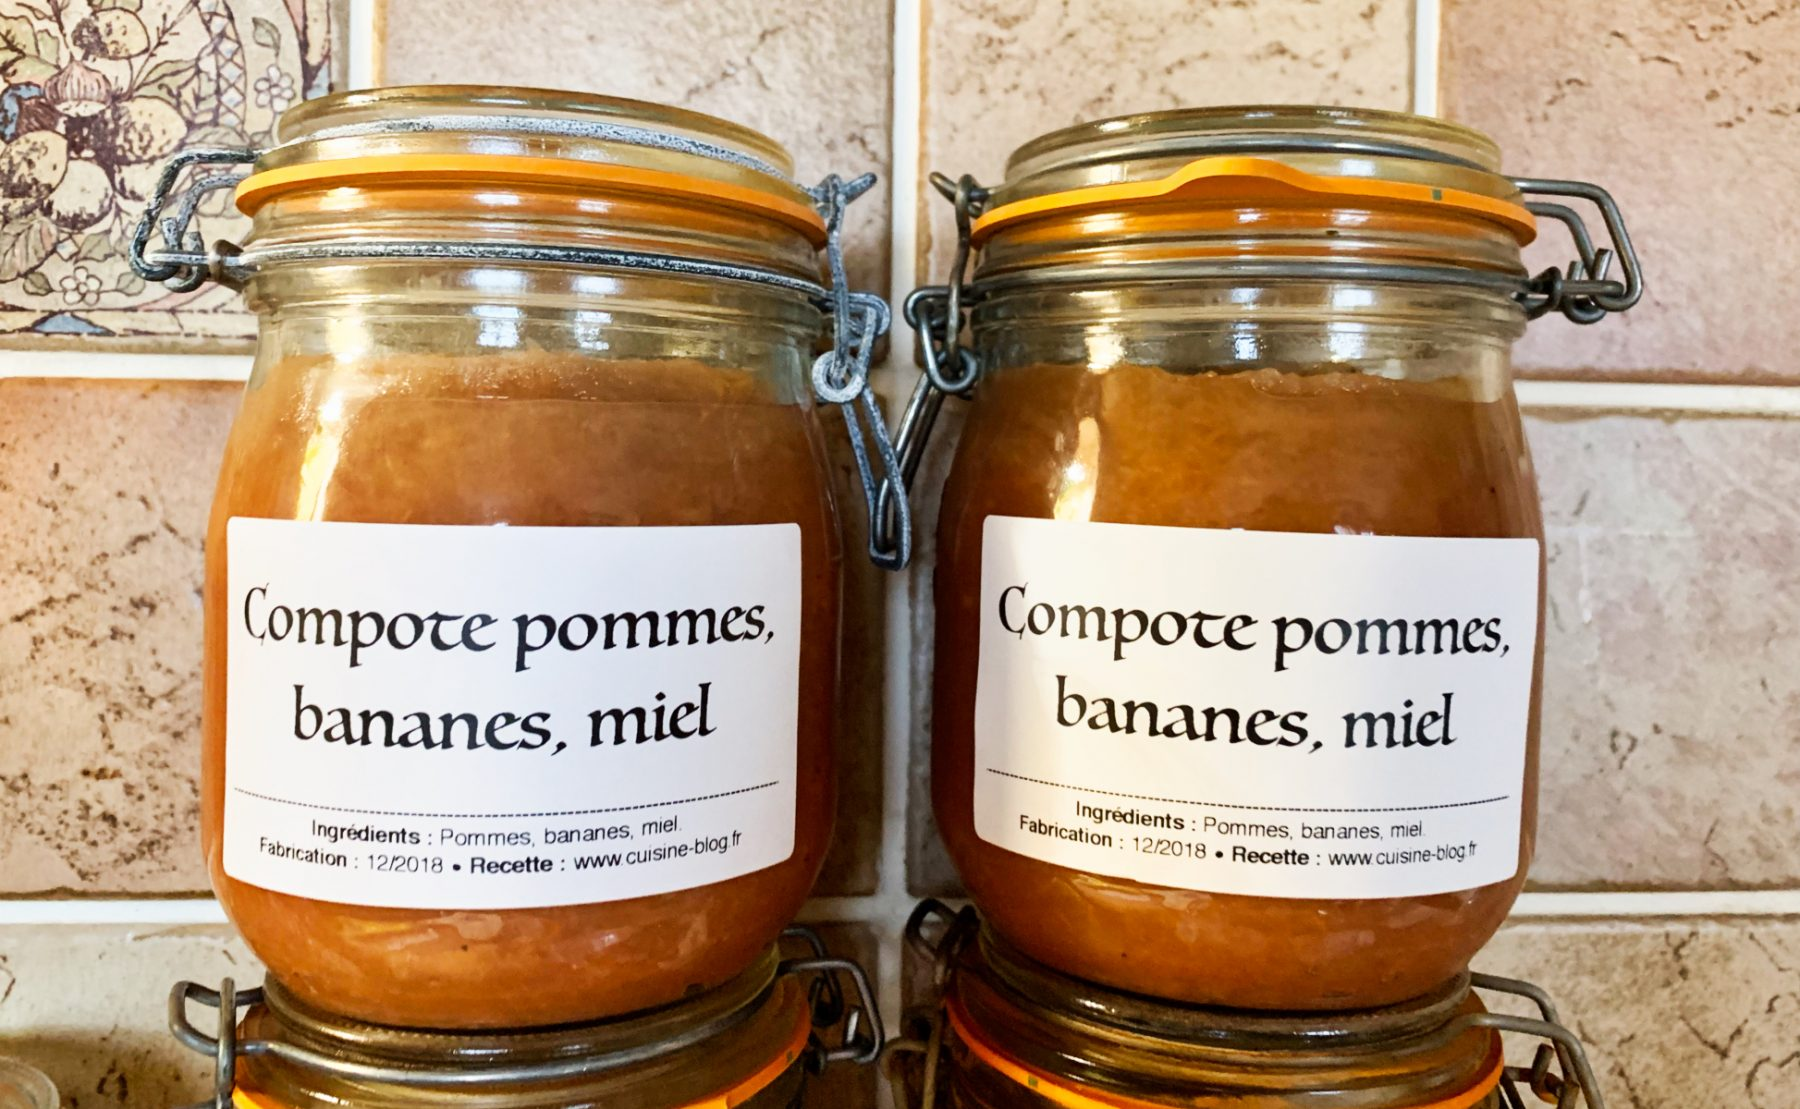 IMG 5737 - Compote pommes miel bananes (conserves)